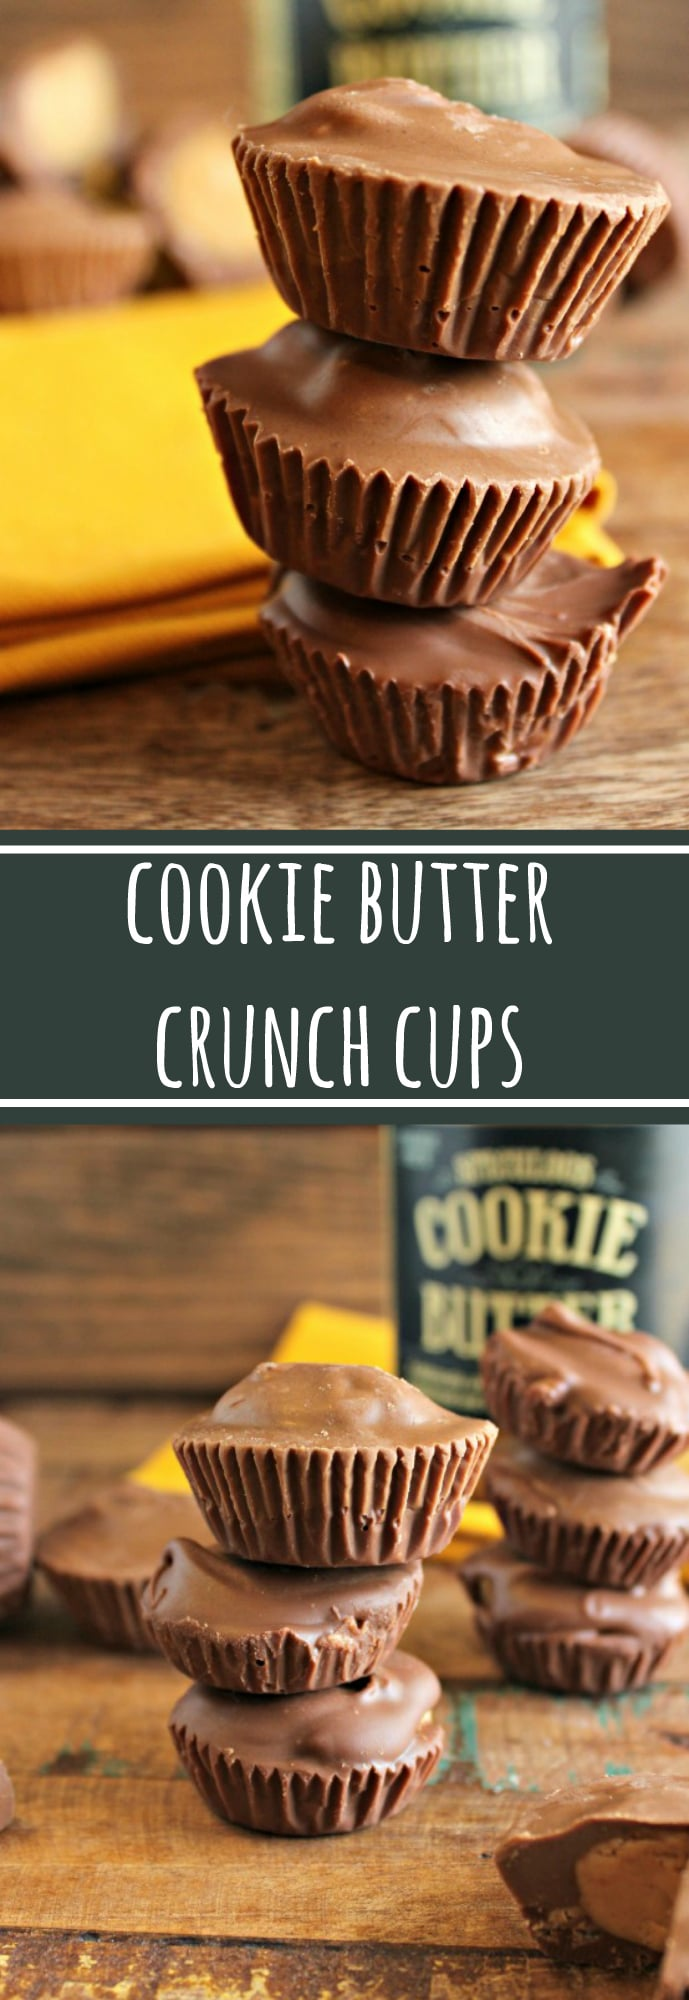 Delicious and easy to make COOKIE BUTTER crunch cups. Like a Reese's cup but with cookie butter! Make in a miniature muffin tin so no special tools required!